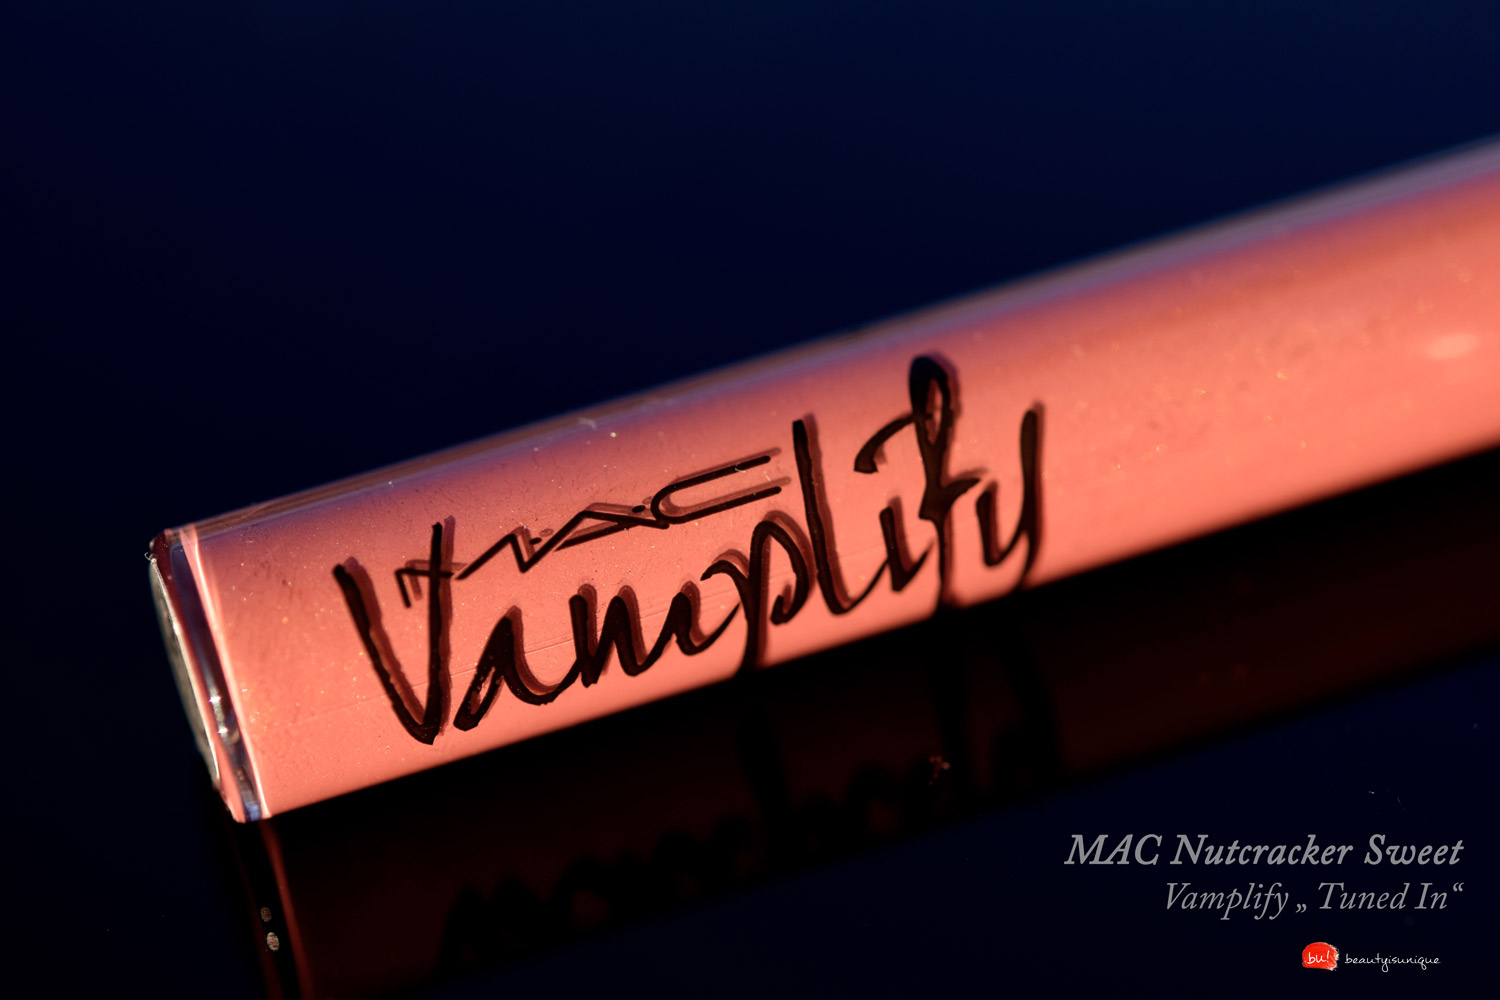 Mac-nutcracker-sweet-vamplify-tuned-in